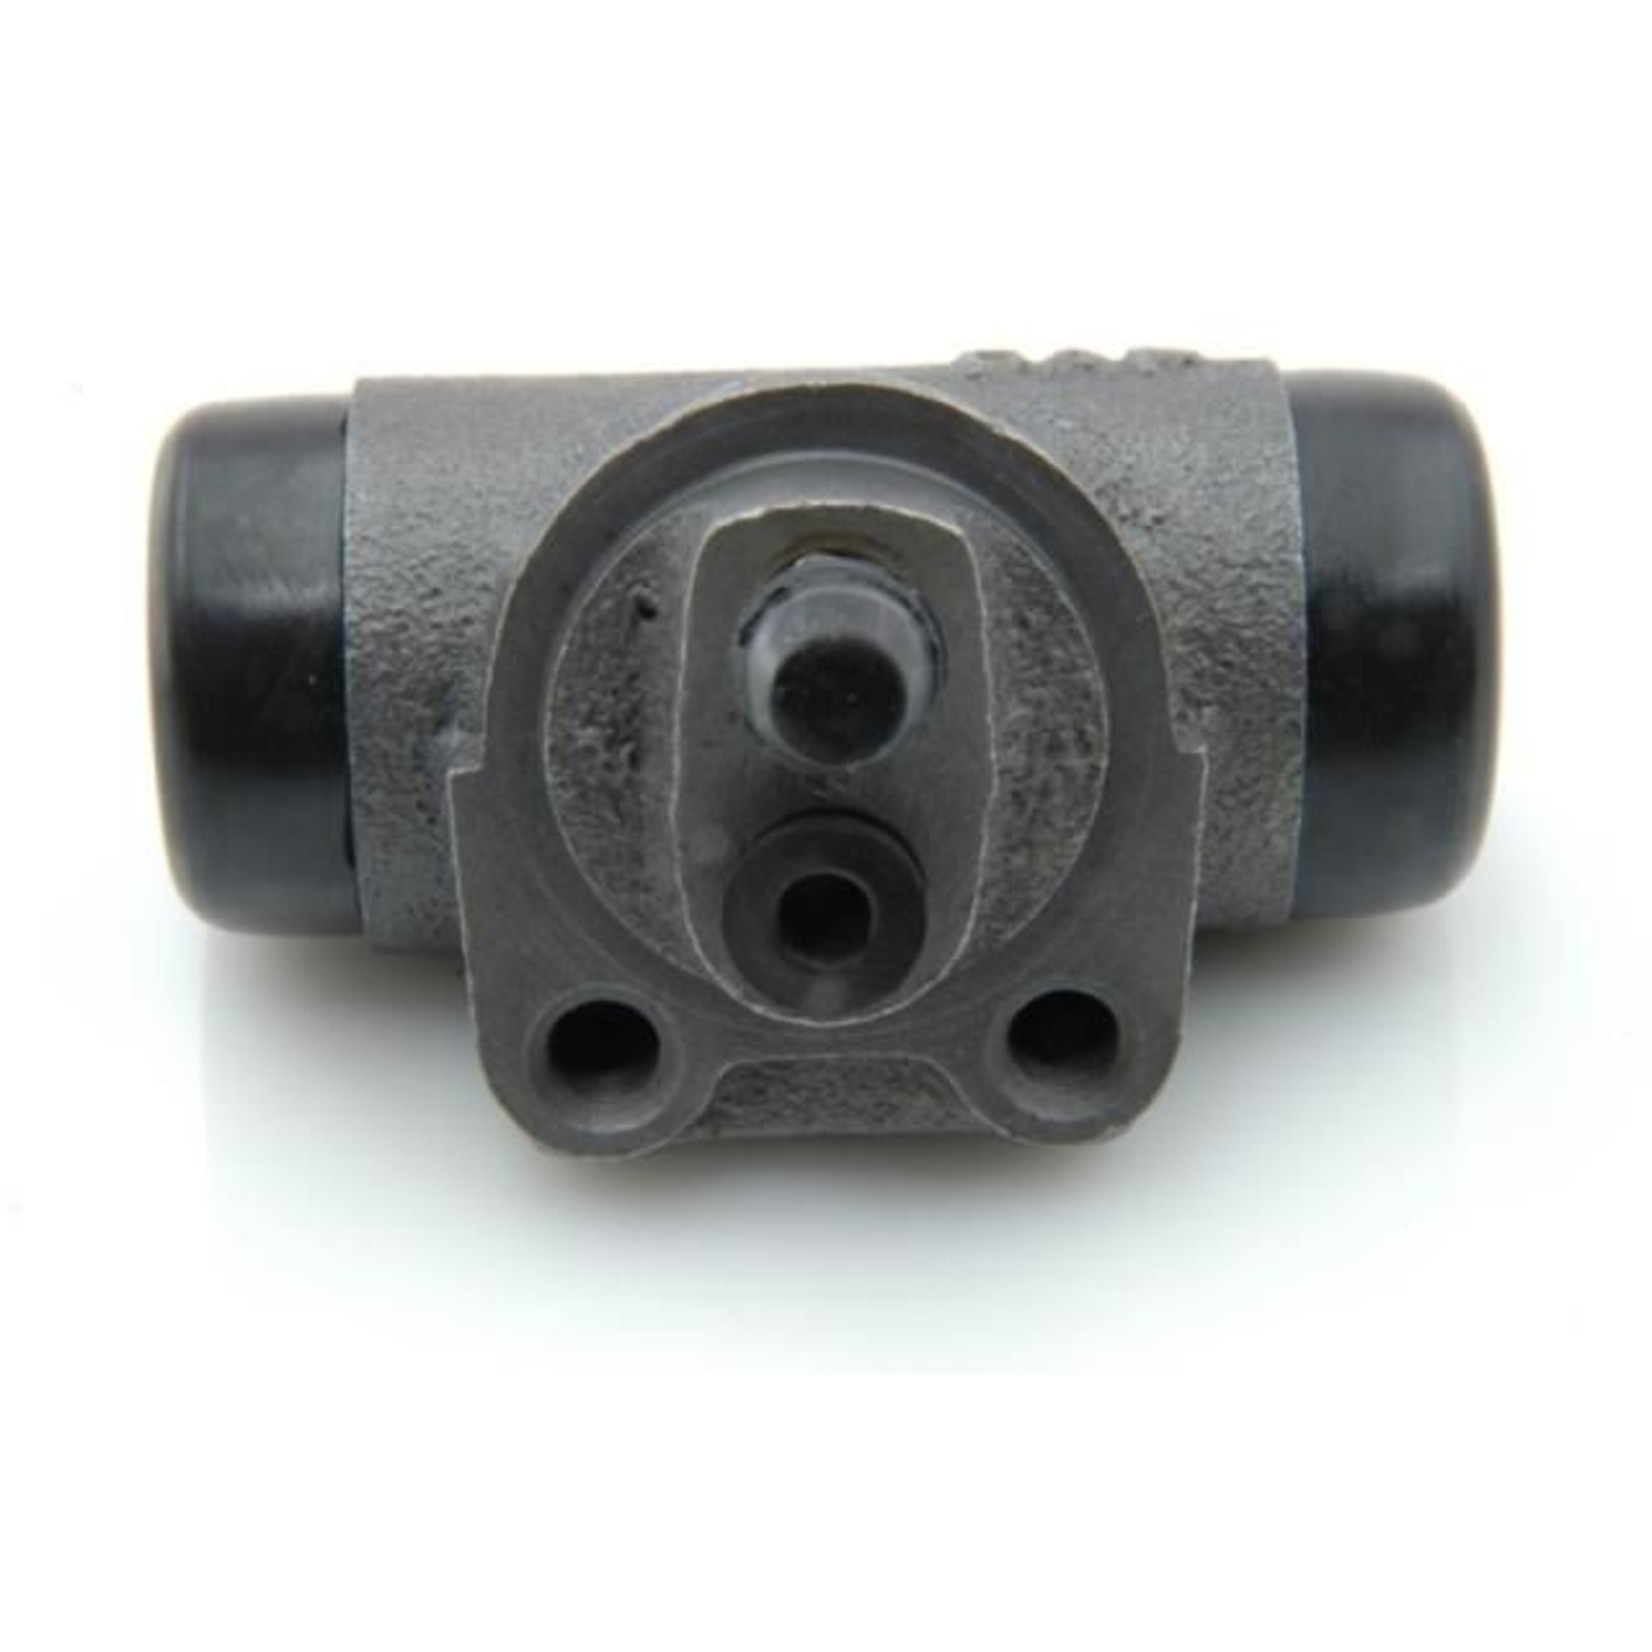 Cylindro freno trasero berline LHM & LHS Nr Org: DXN45305